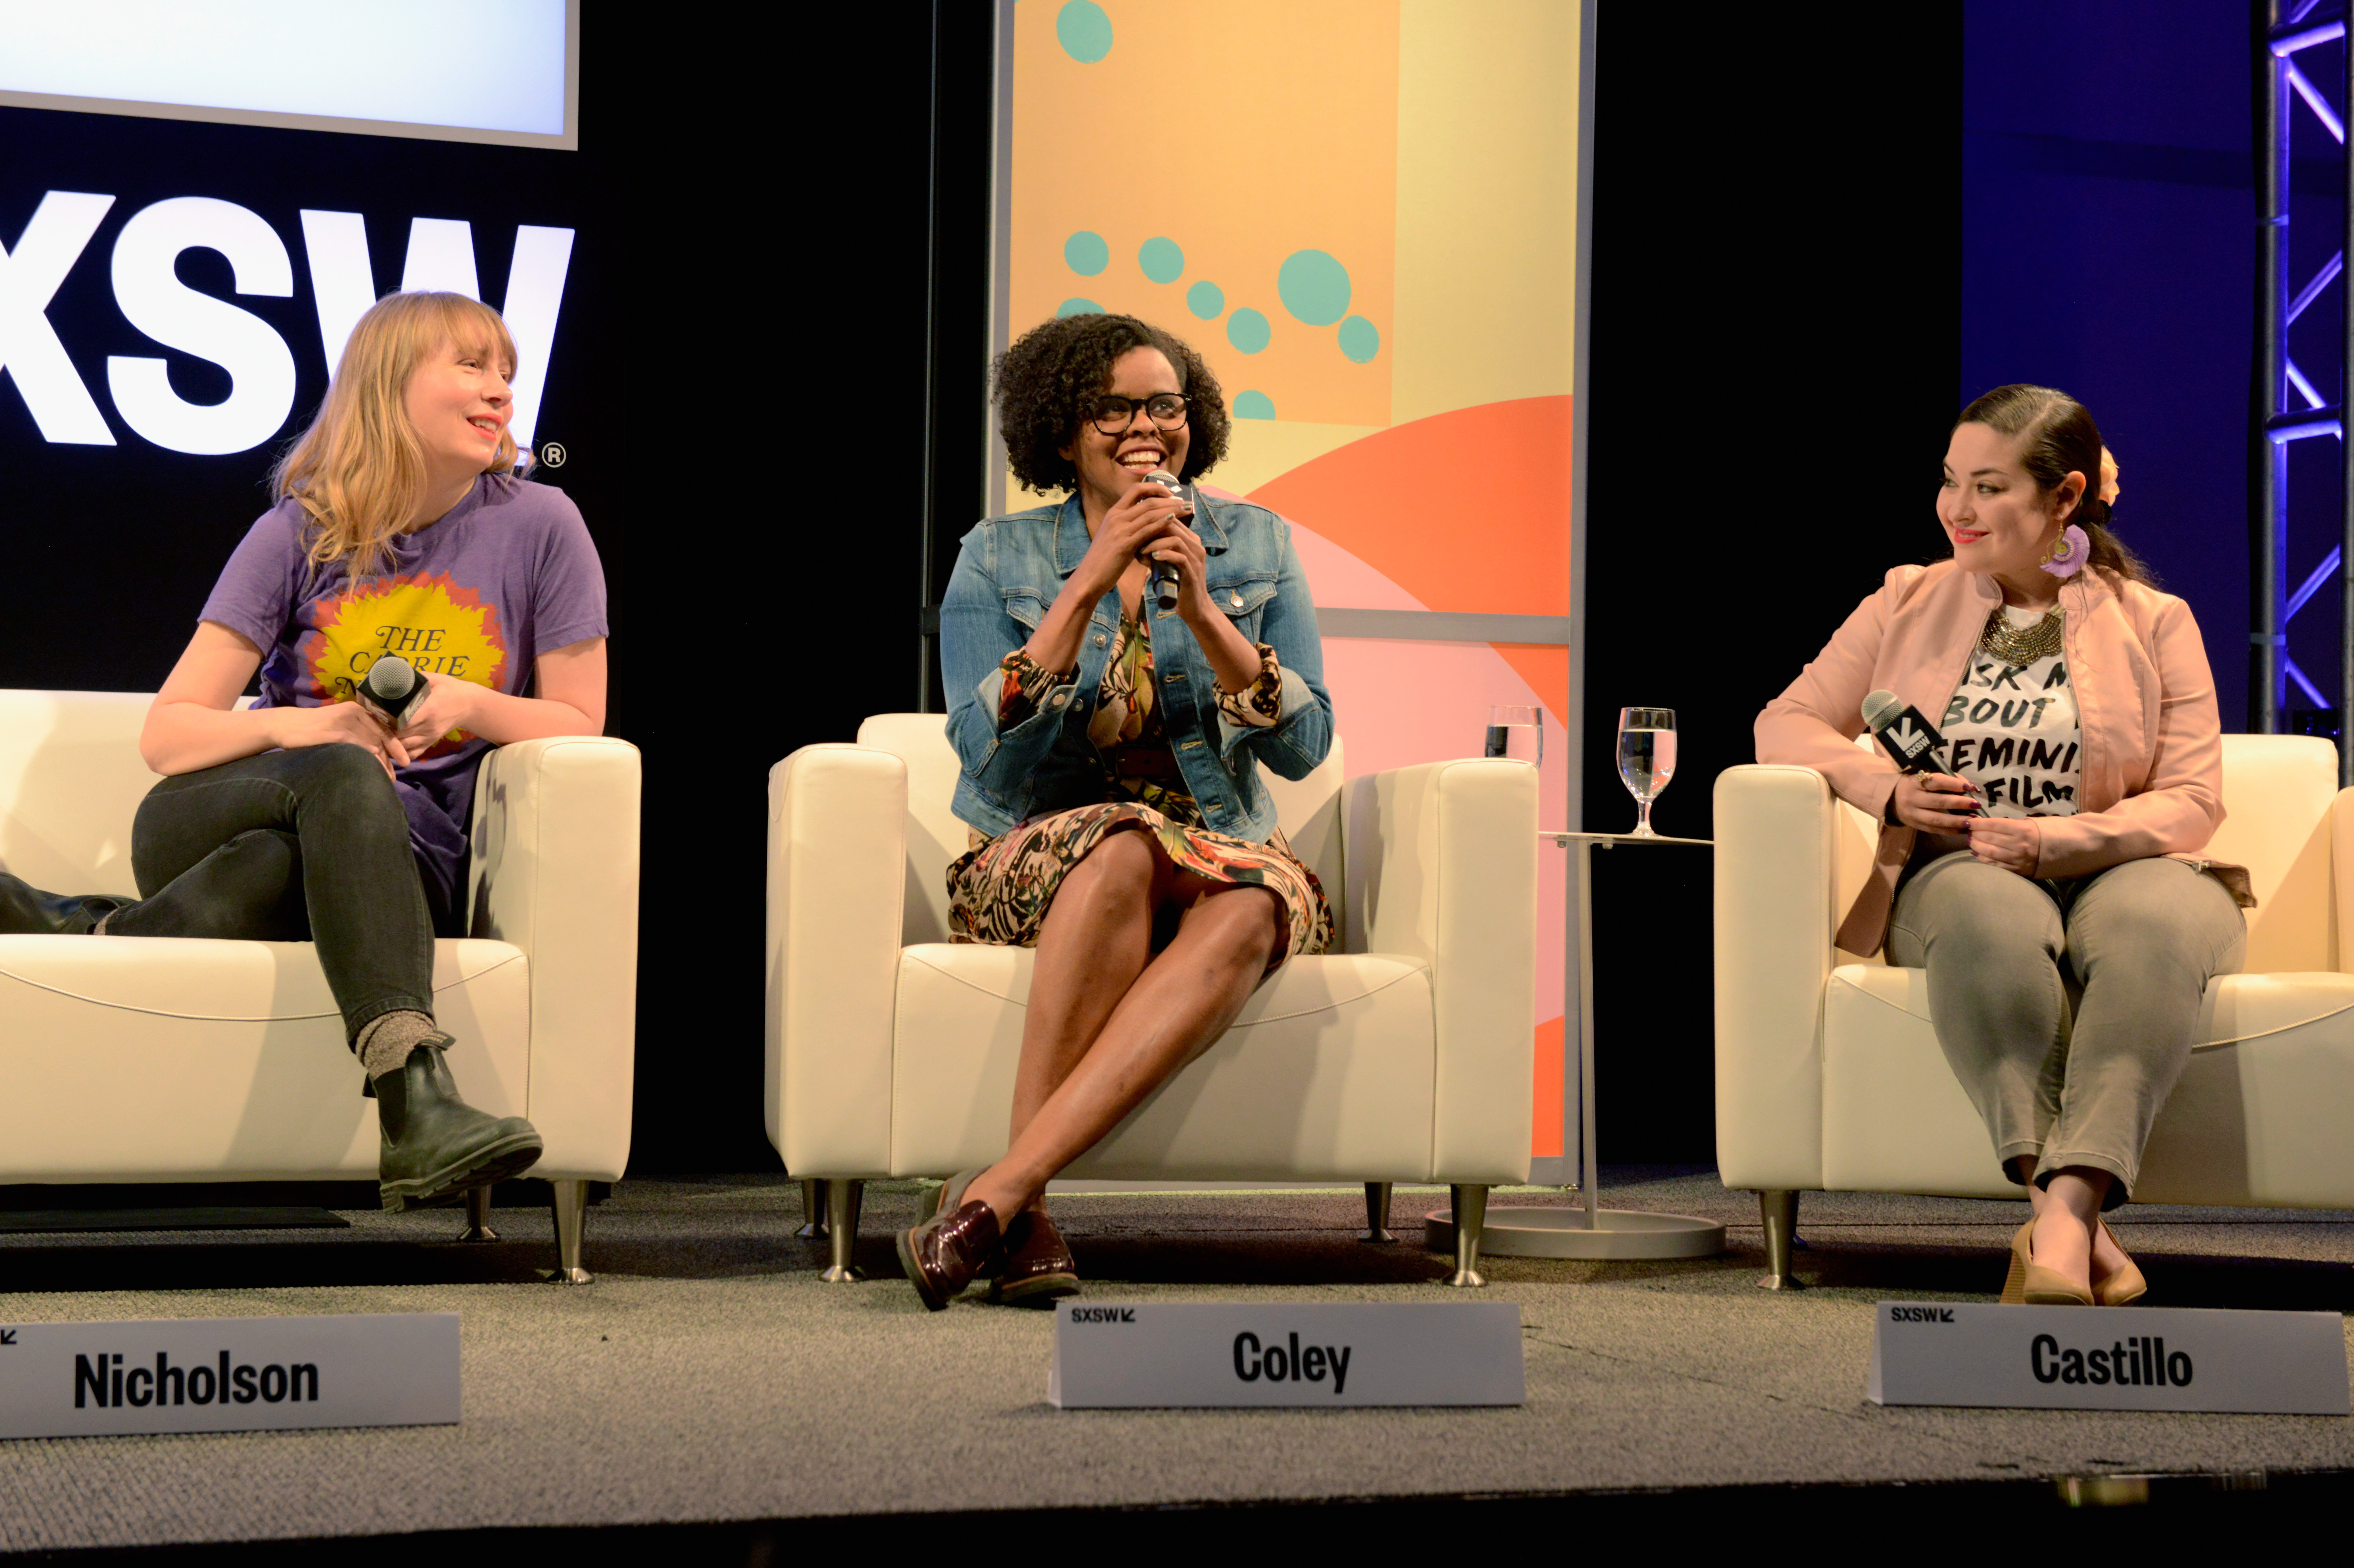 Amy Nicholson, Jacqueline Coley and Monica Castillo speak onstage at The Female Voices of Film Twitter during SXSW at Austin Convention Center on March 11, 2018 in Austin, Texas. | Photo by Nicola Gell/Getty Images